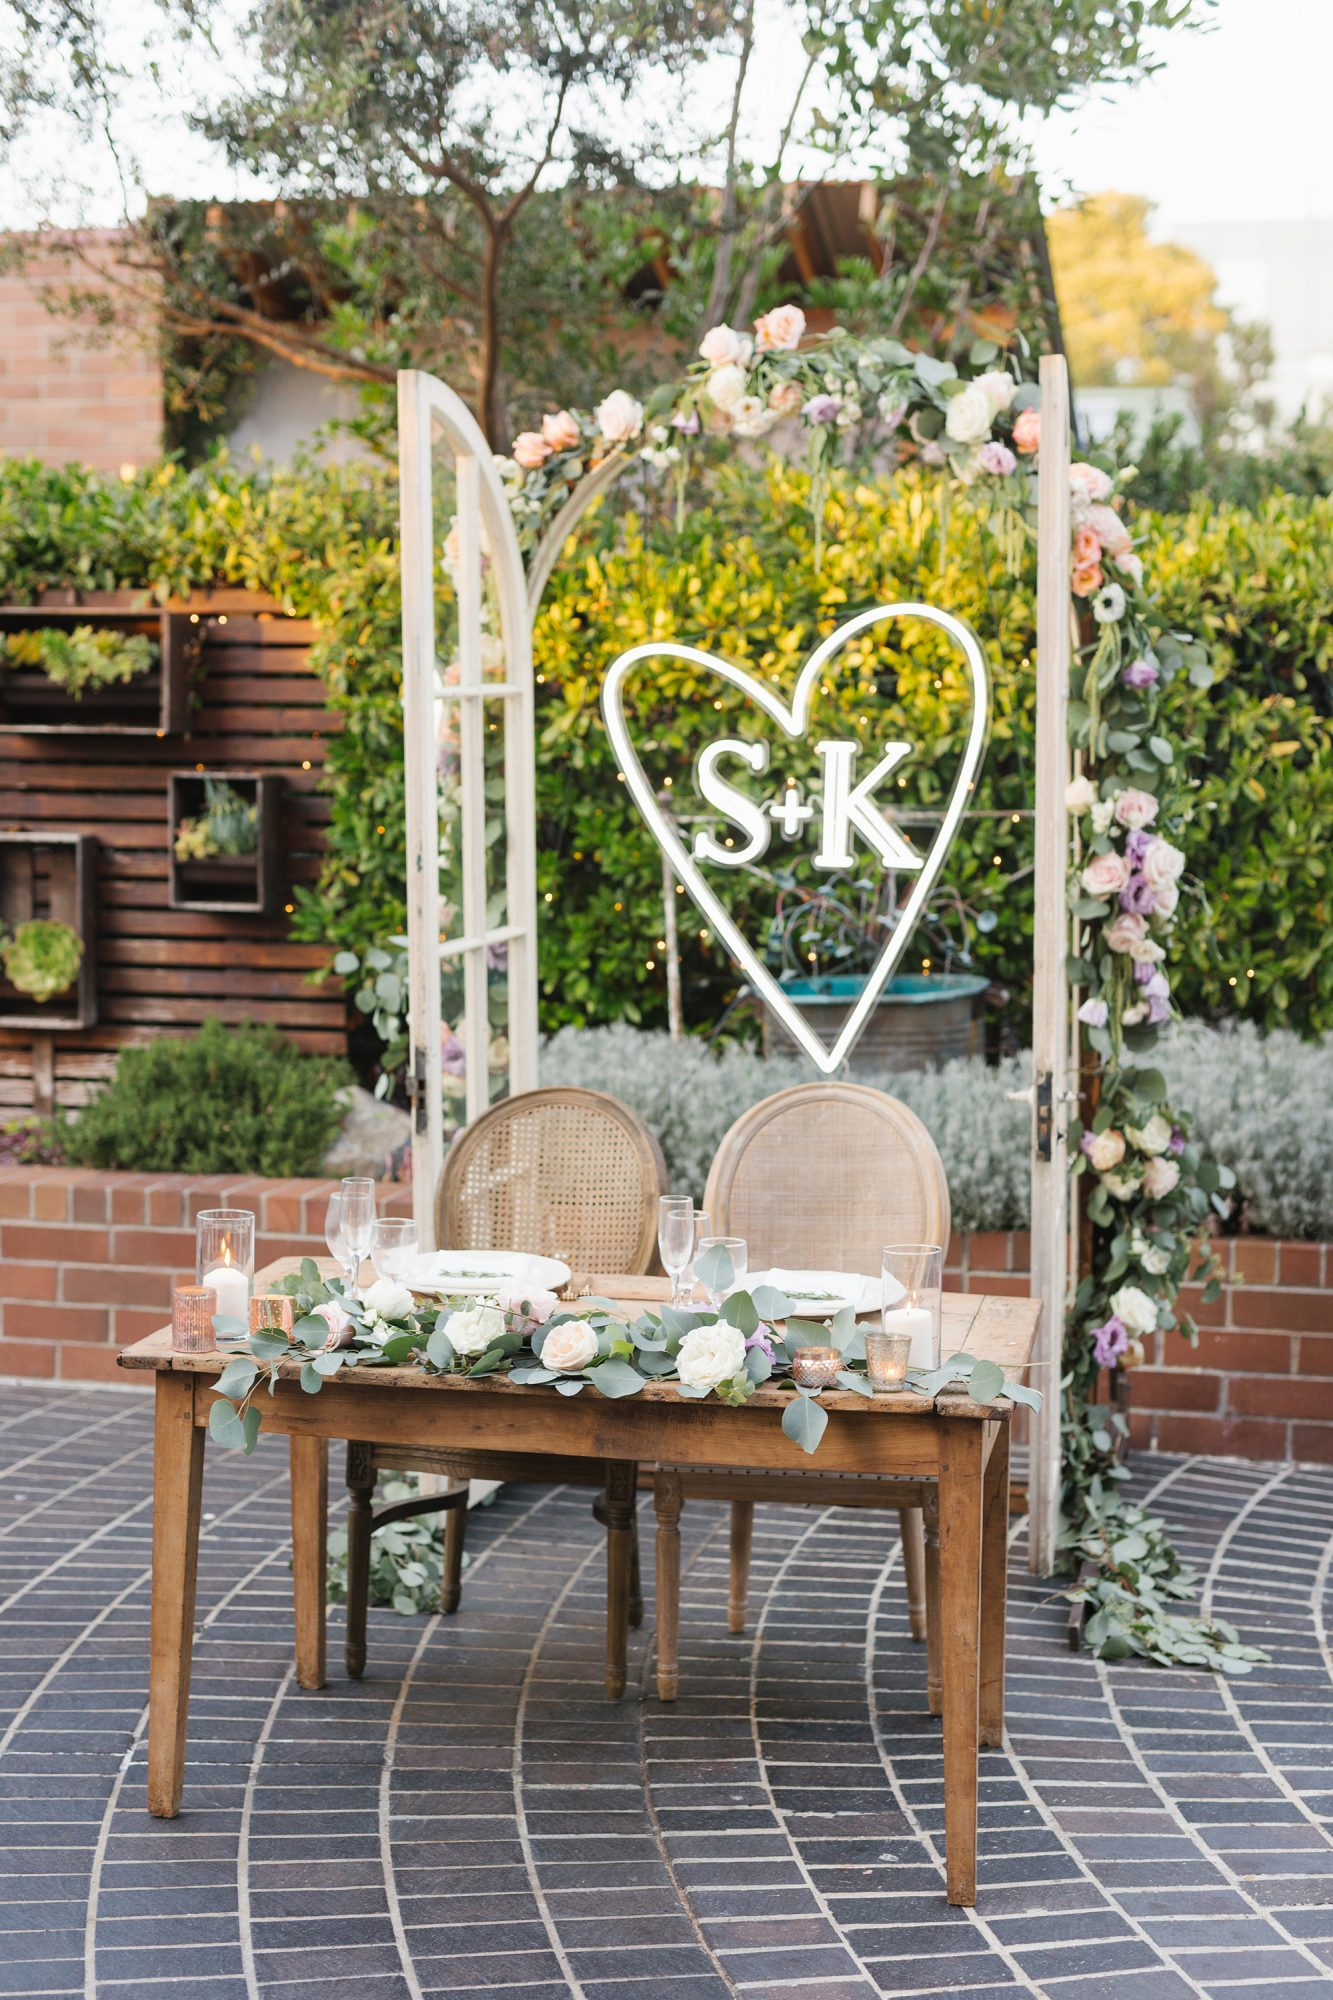 shelana kevin wedding couple reception table decorated with flowers and a door backdrop